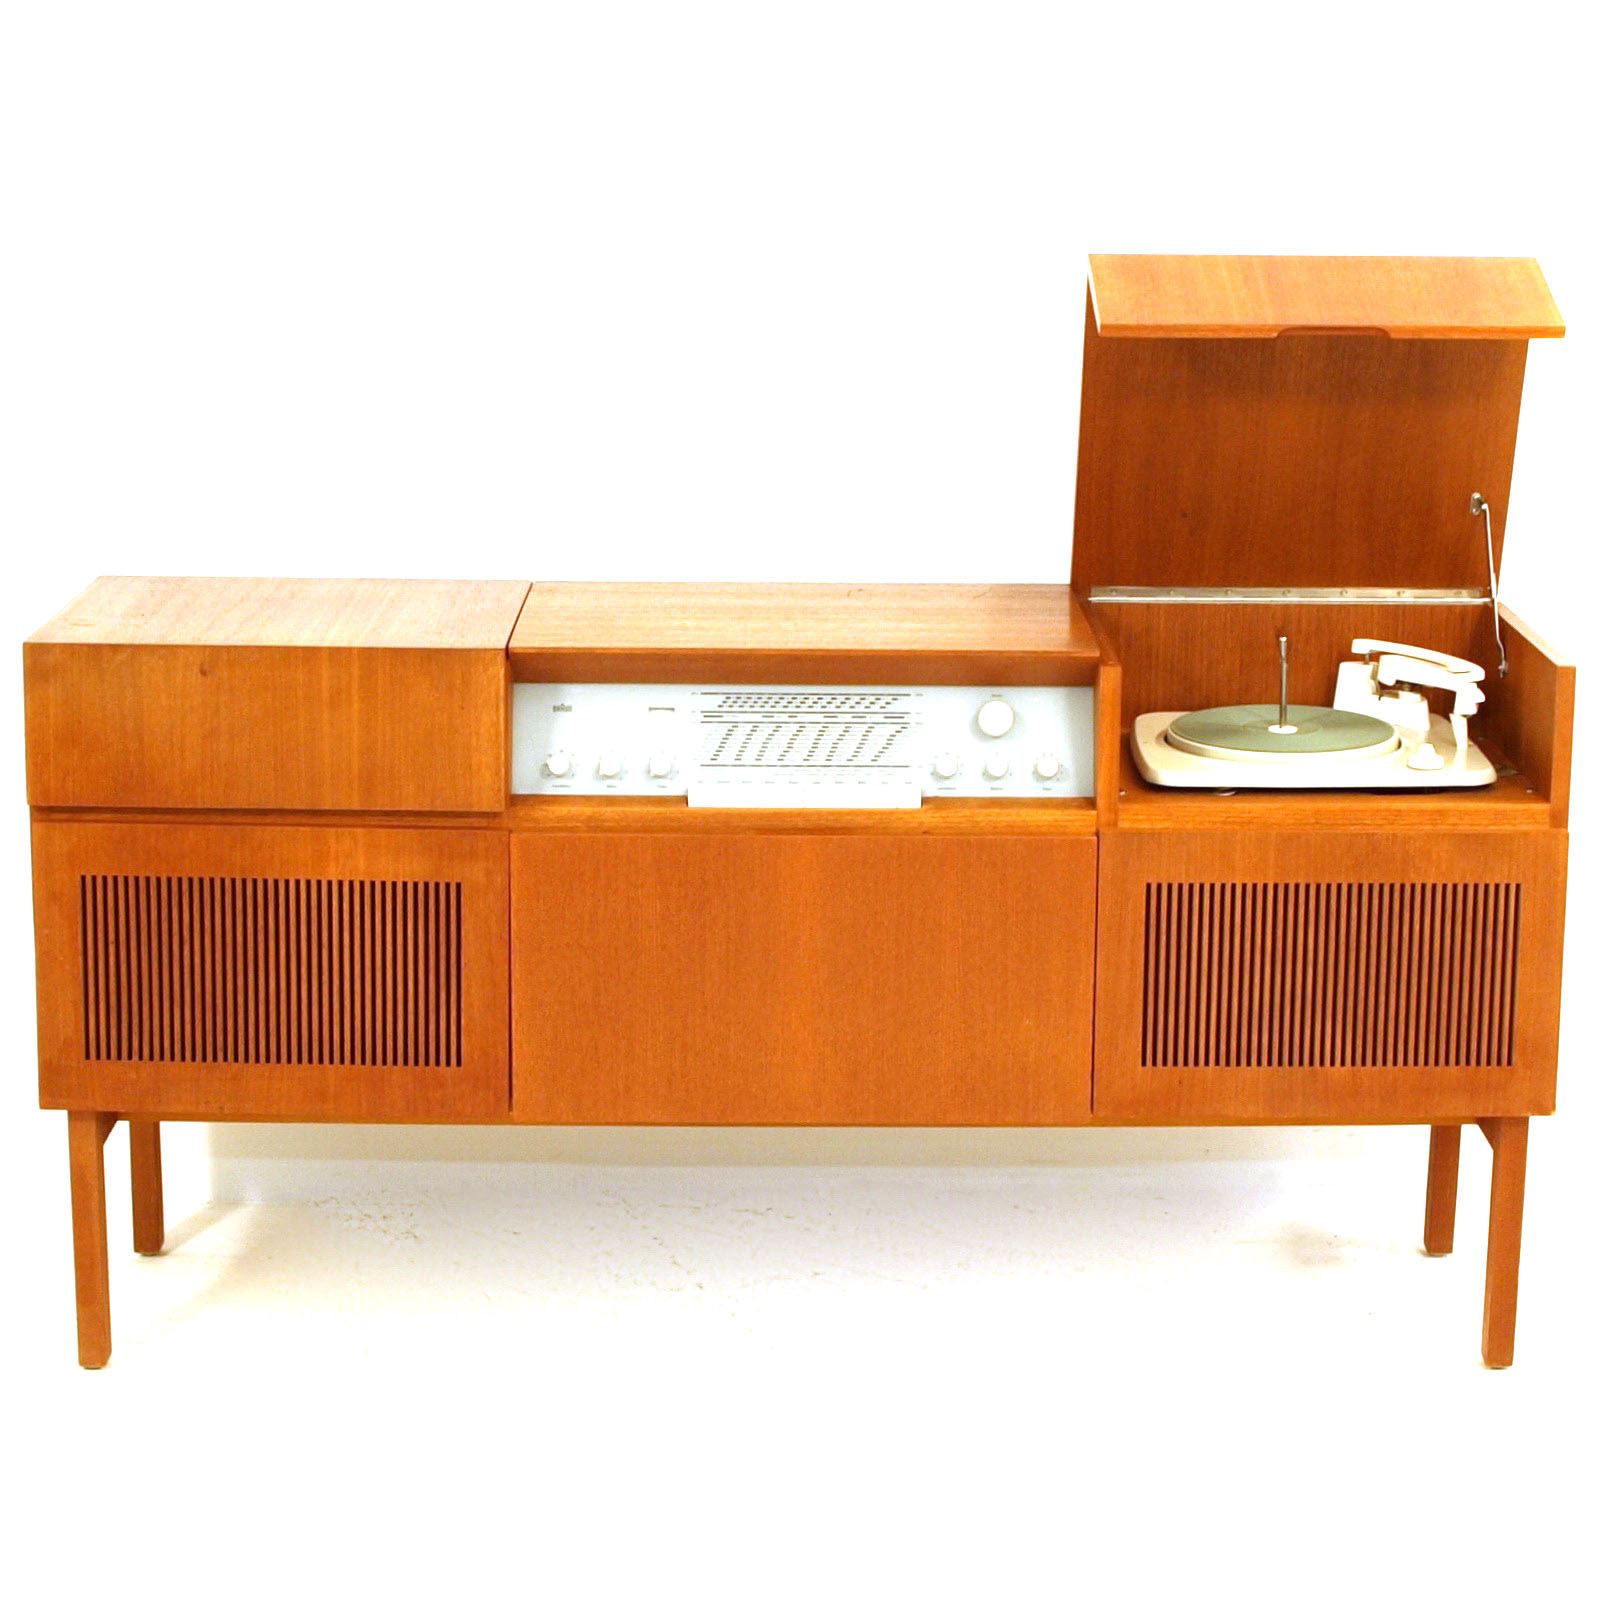 stereo phono m bel mit ger ten von braun m bel z rich vintagem bel. Black Bedroom Furniture Sets. Home Design Ideas